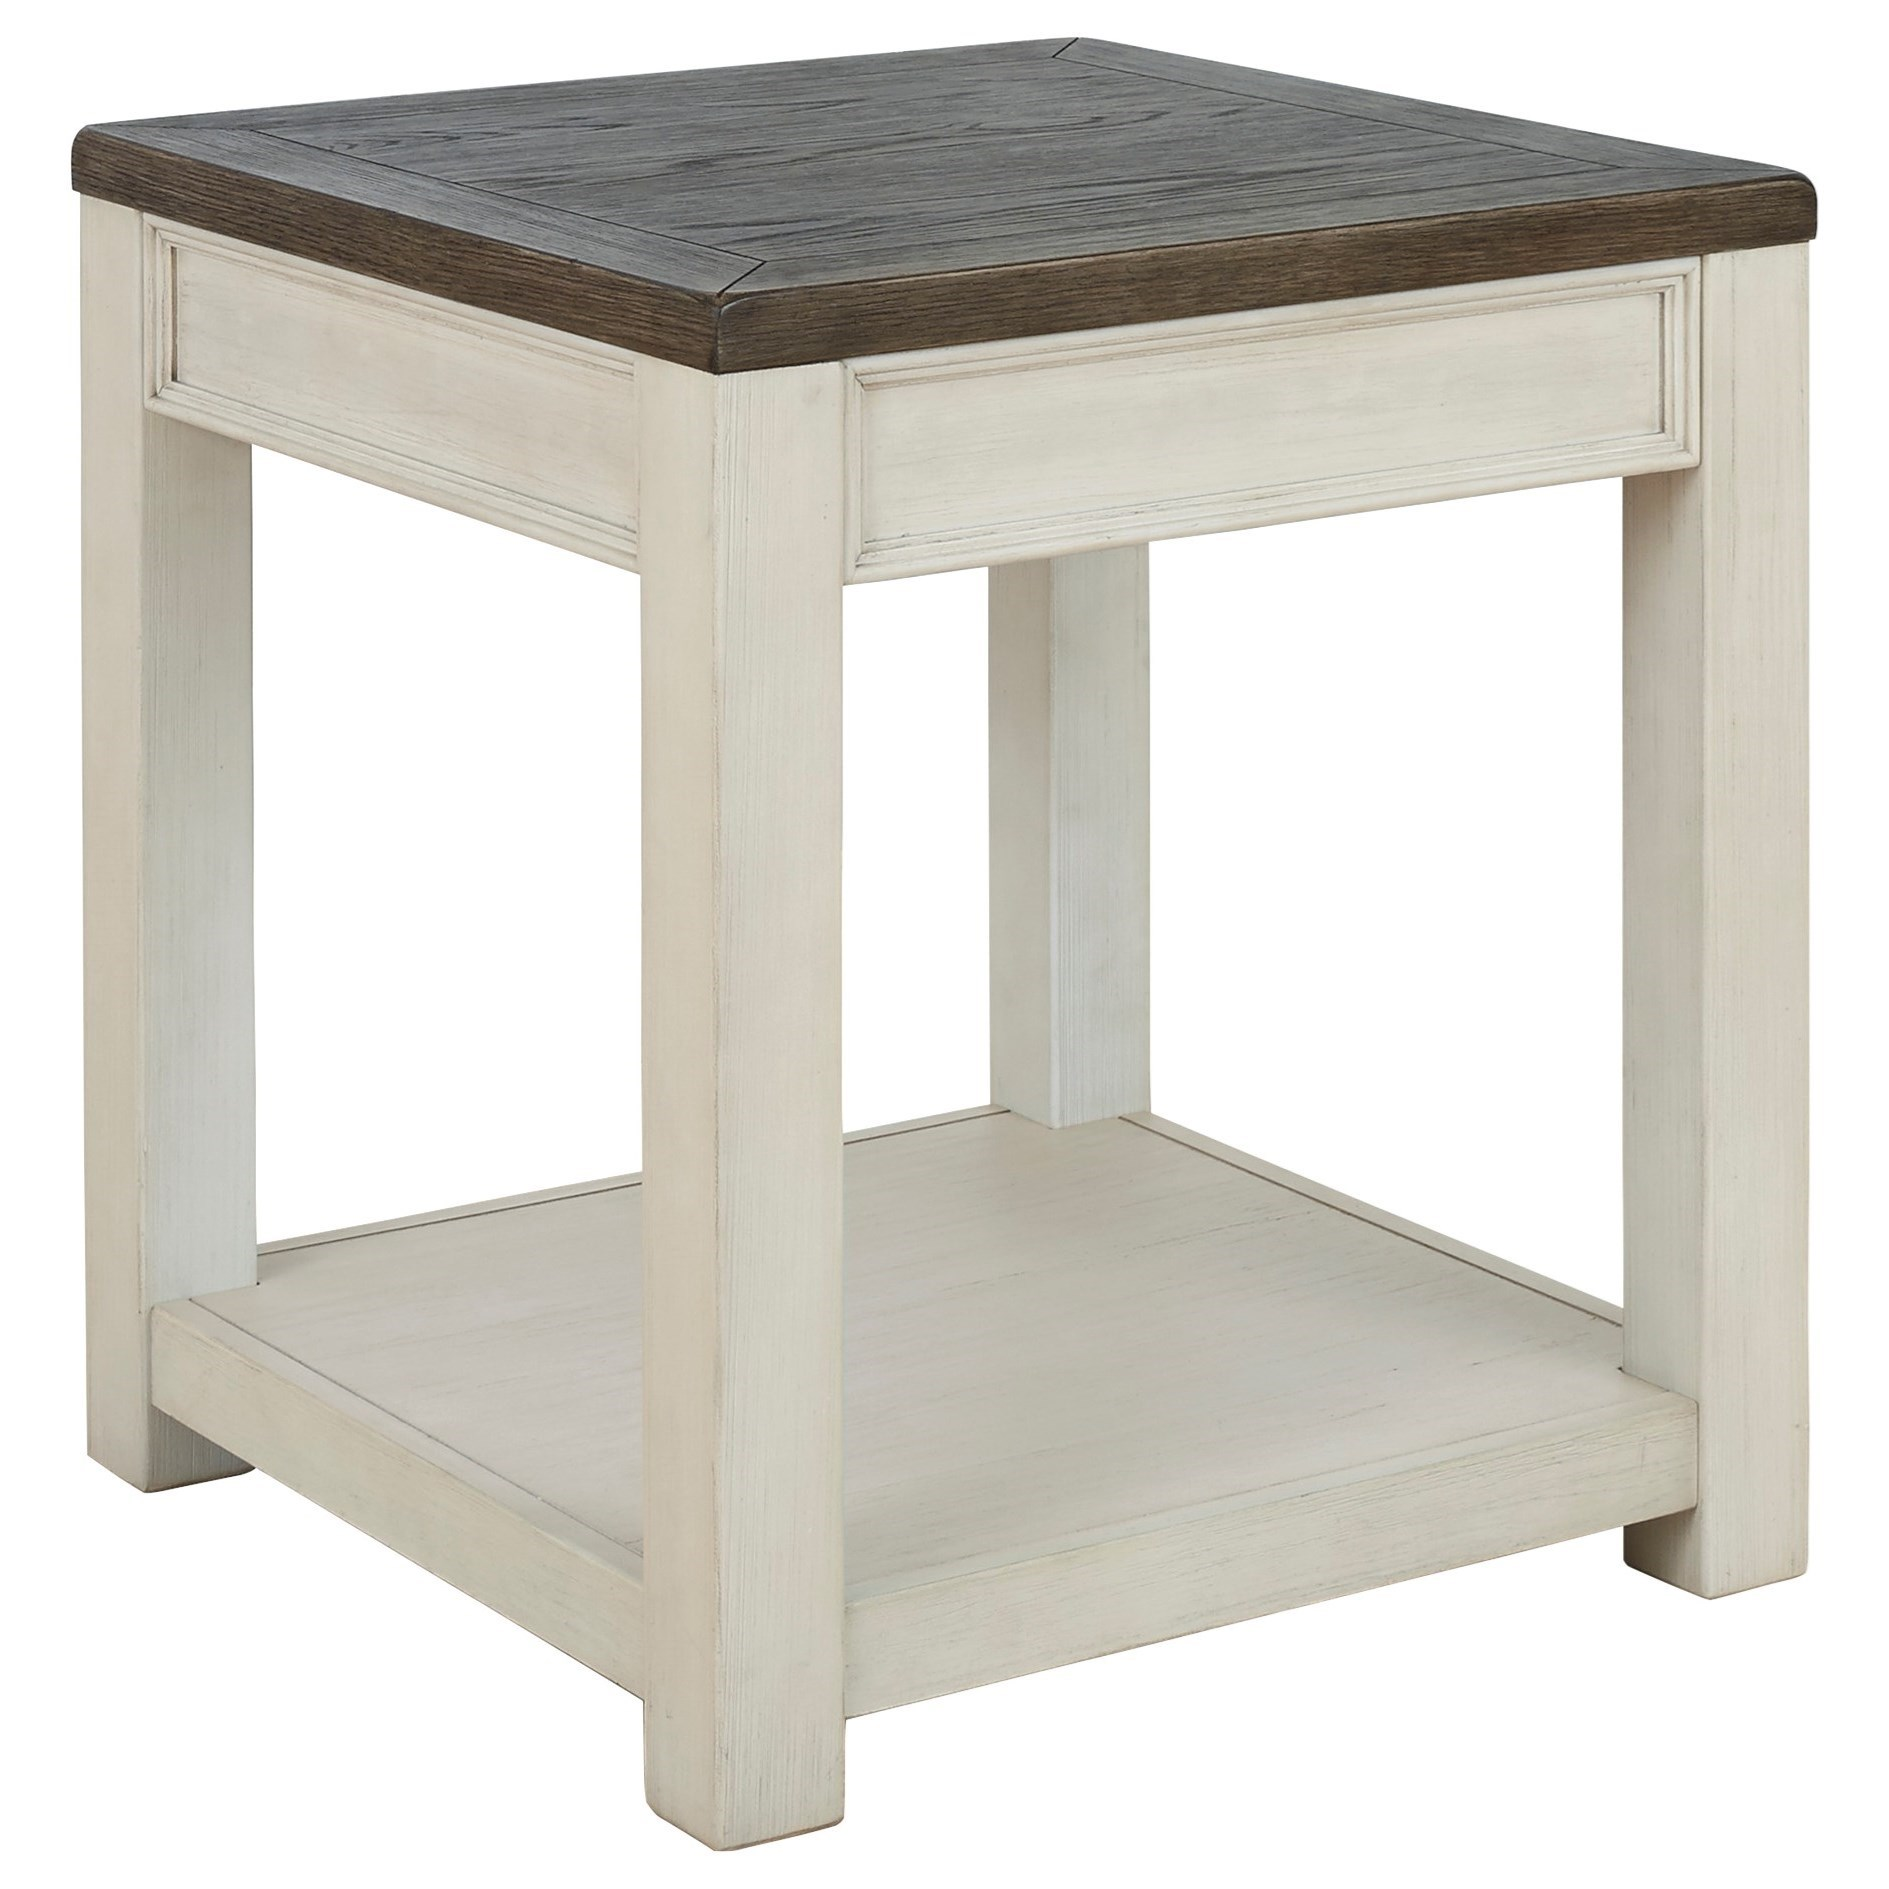 Bolanburg Square End Table by Signature Design by Ashley at Northeast Factory Direct